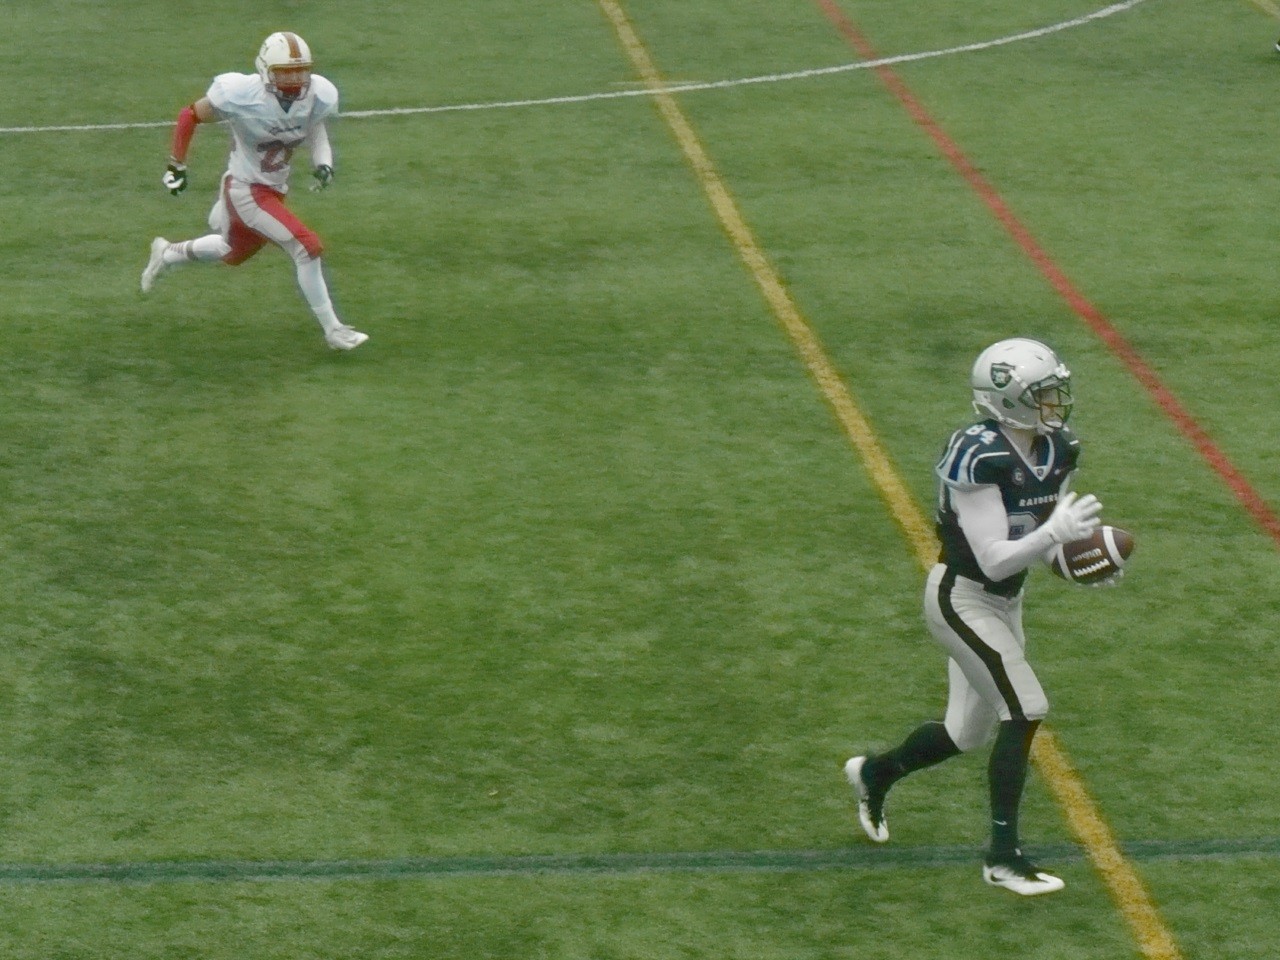 Daniel Mancini makes a catch before running for a TD